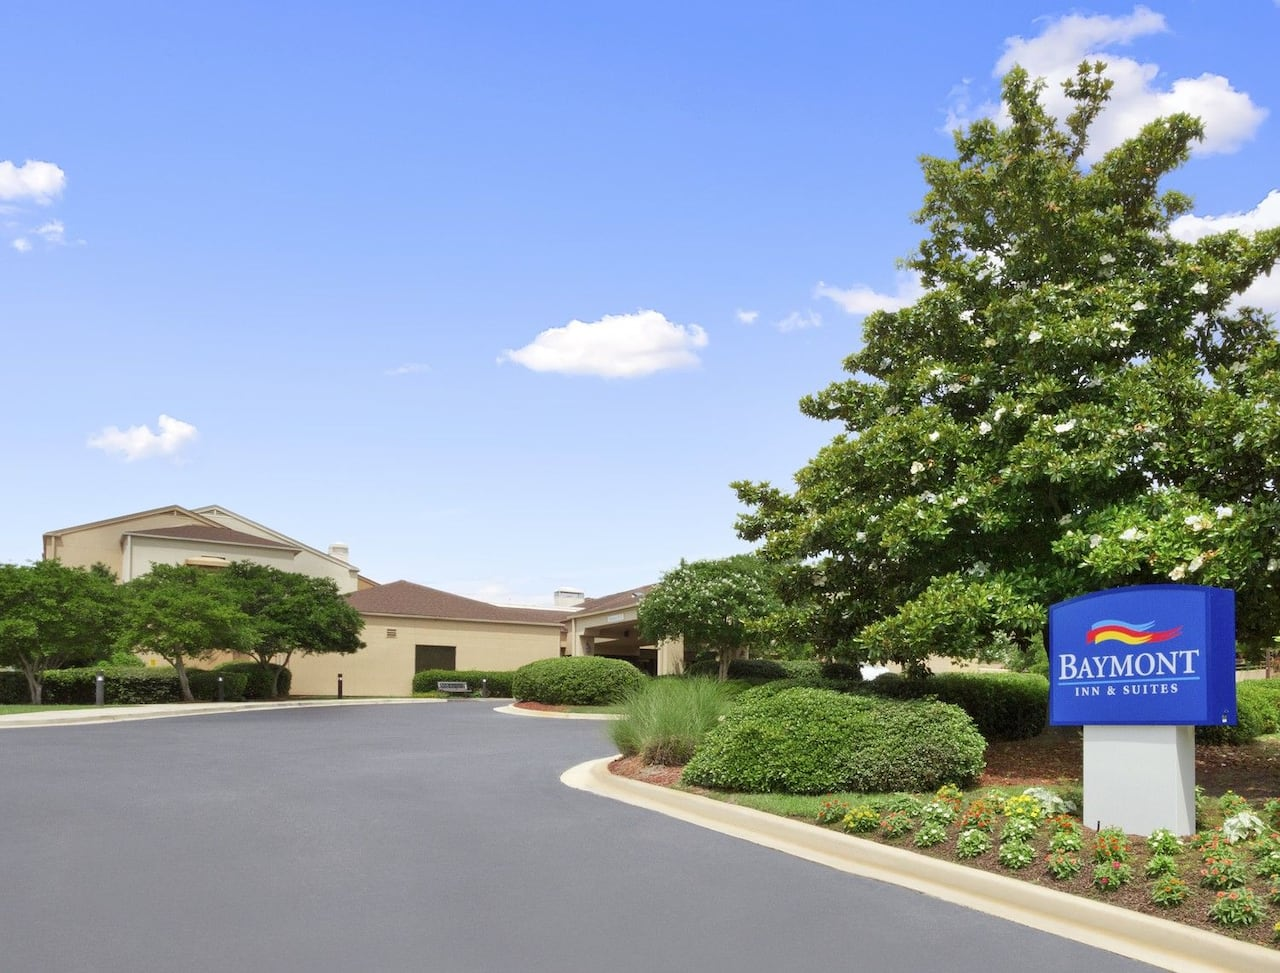 Baymont Inn & Suites Columbia Northwest in Blythewood, South Carolina